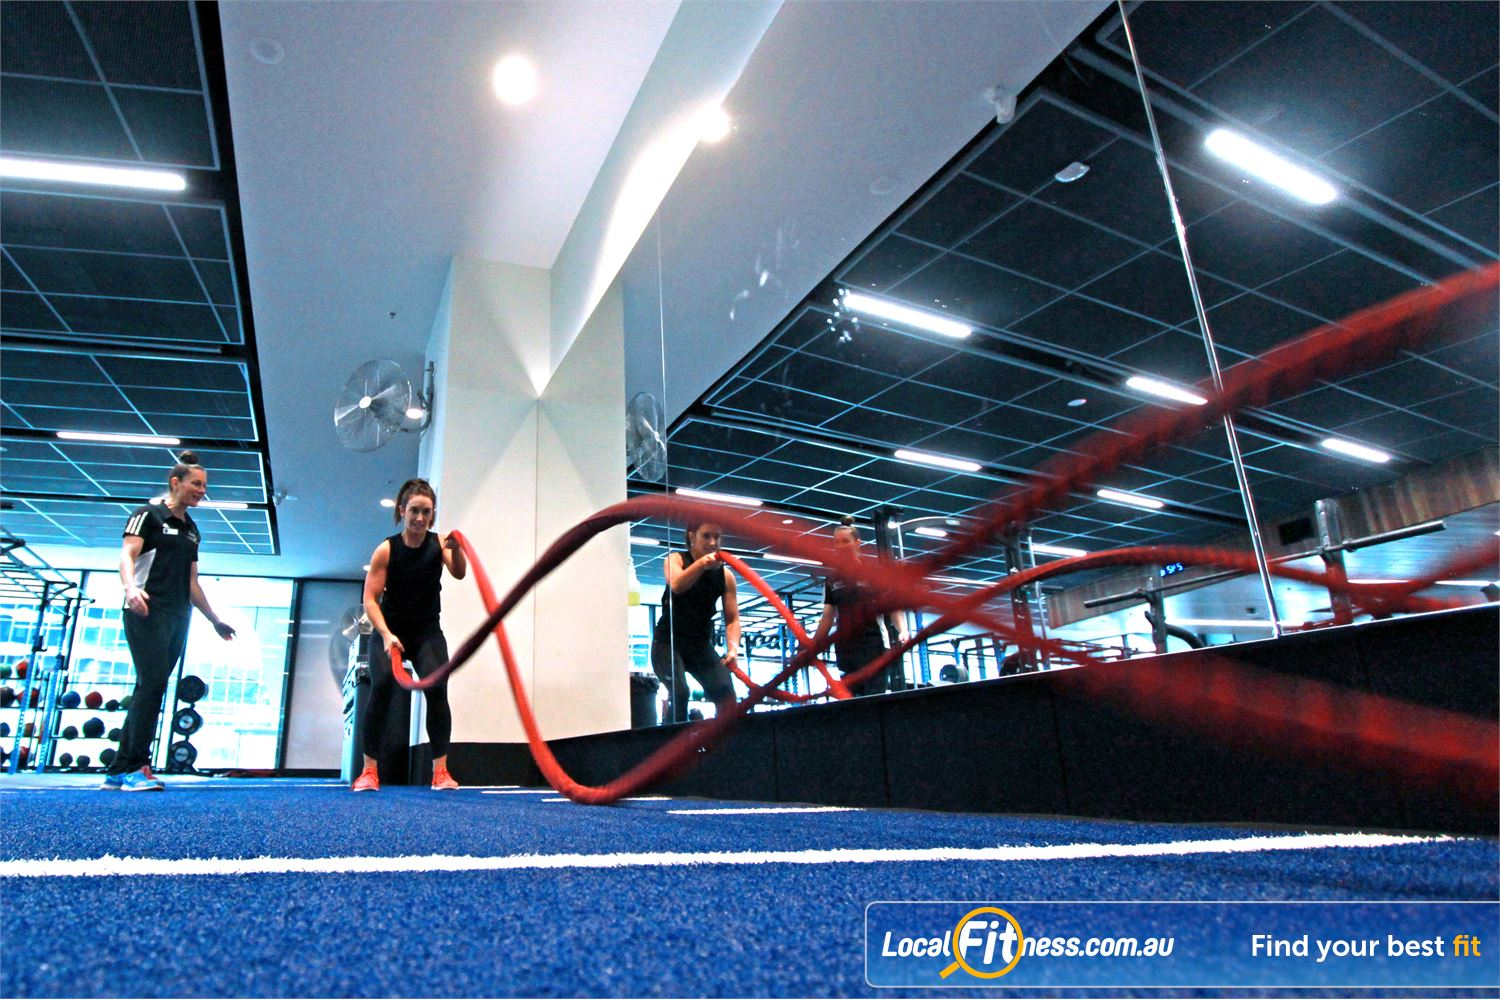 Goodlife Health Clubs Docklands Our Docklands gym team can take you through a functional training routine.